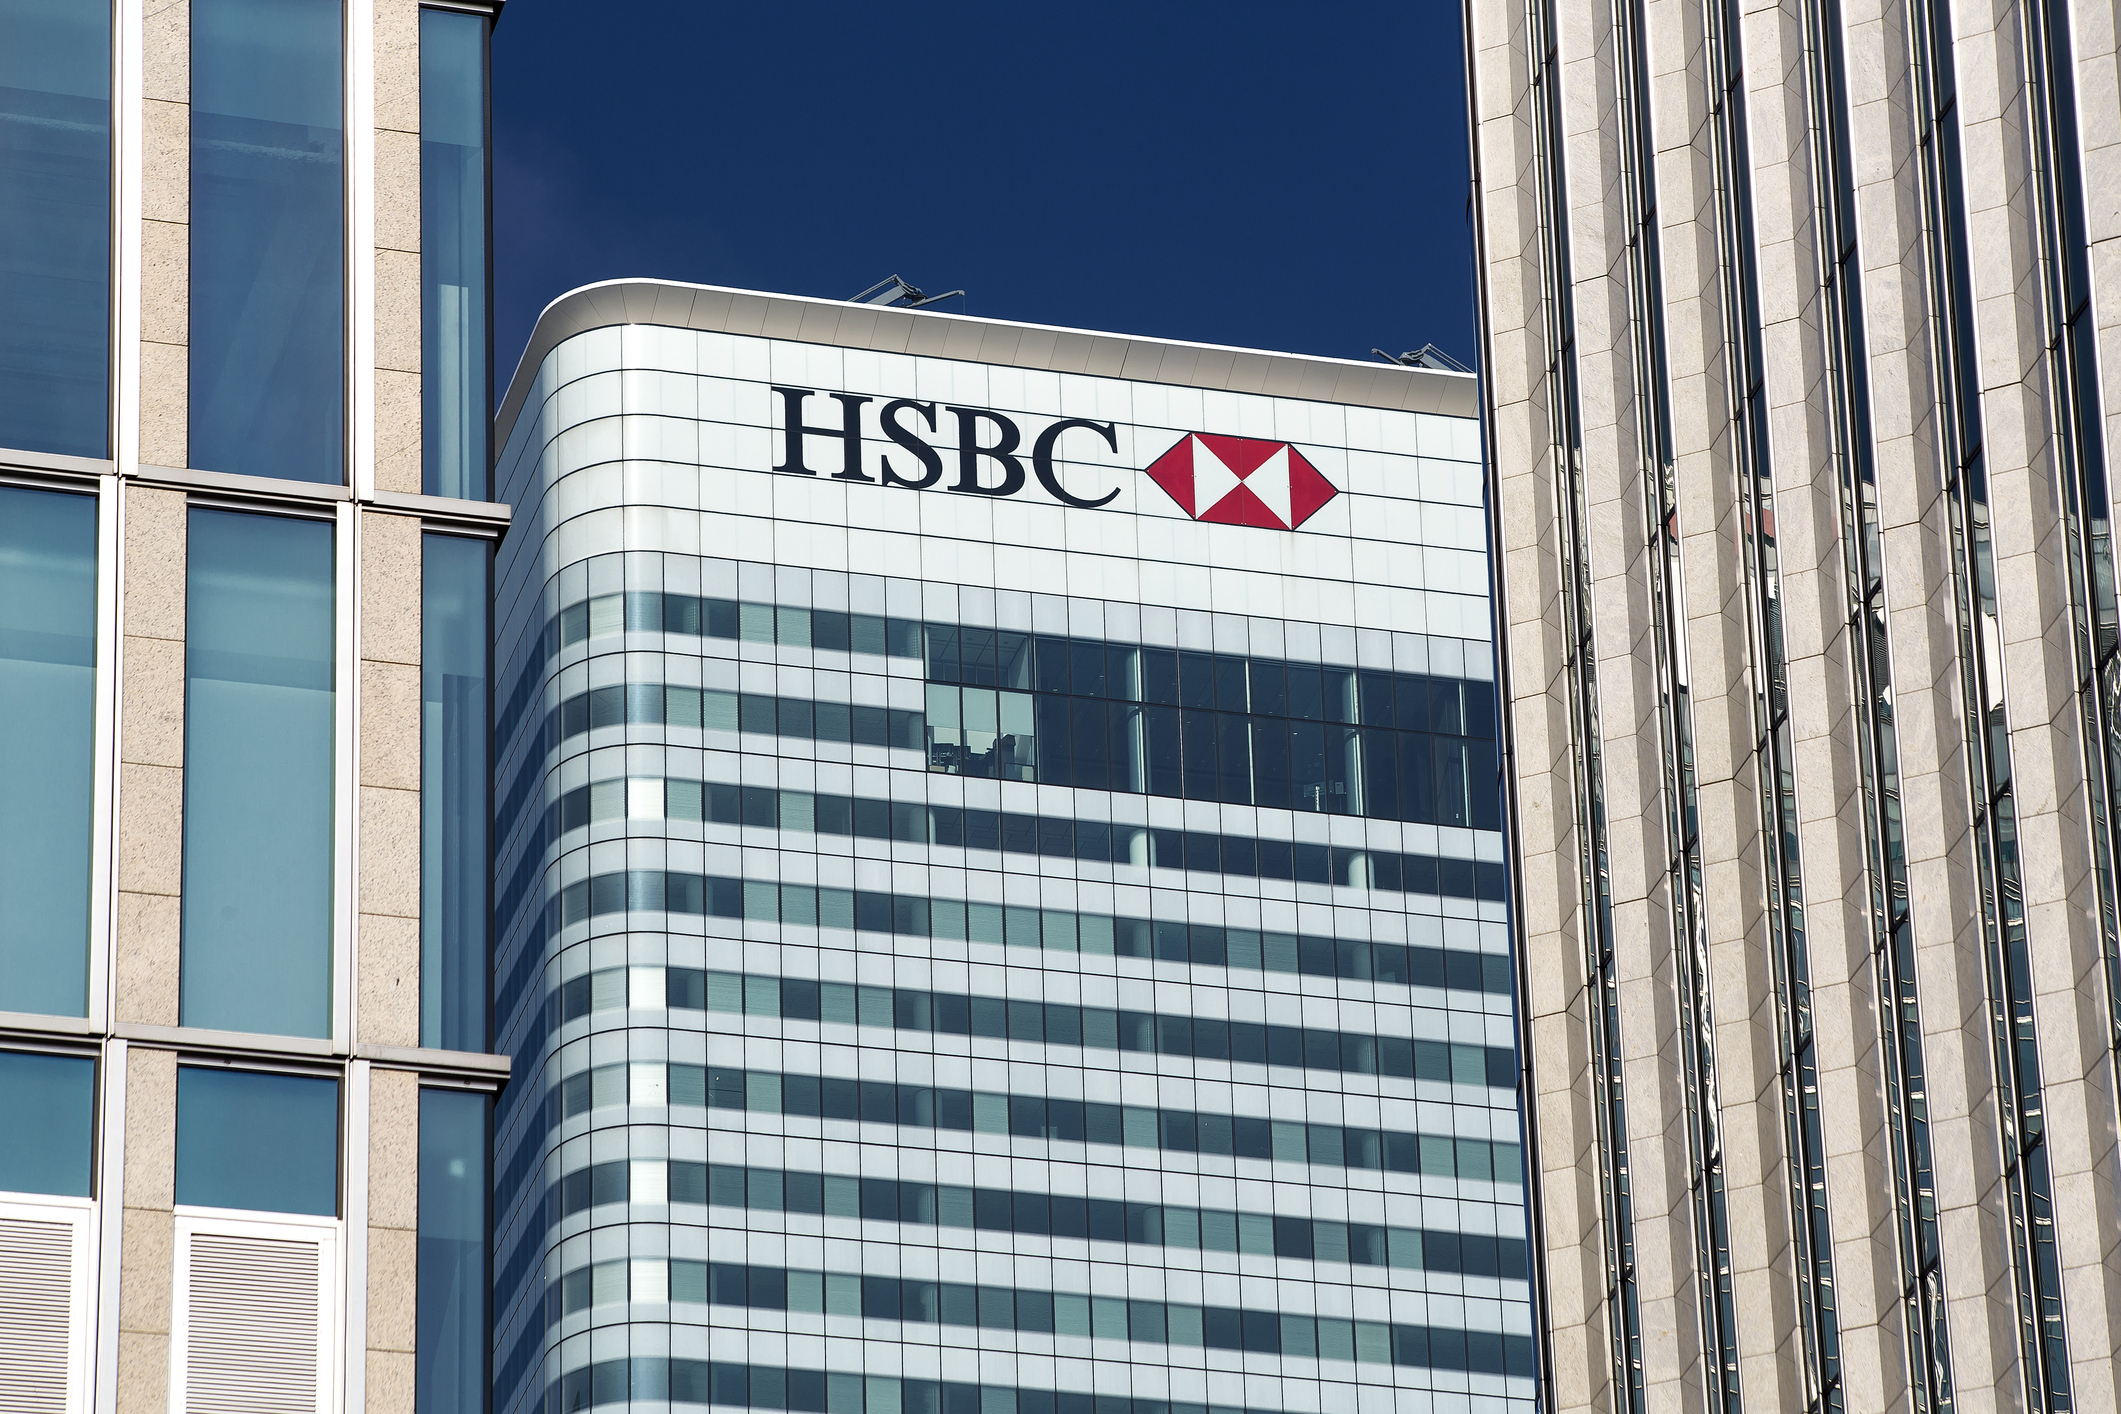 Second Circuit crushes HSBC monitor report ruling